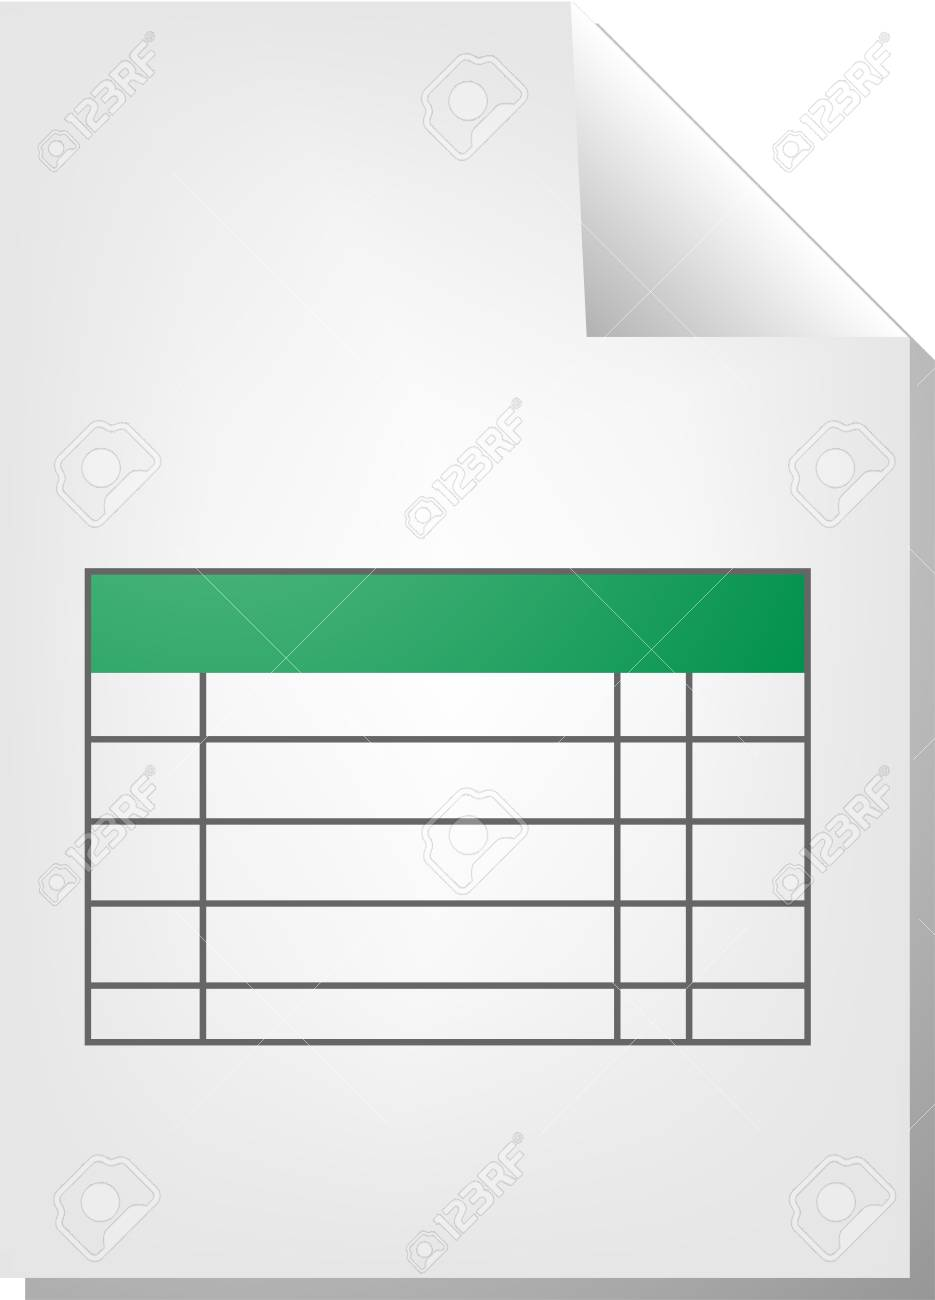 Table Chart Document File Type Illustration Clipart Stock Photo